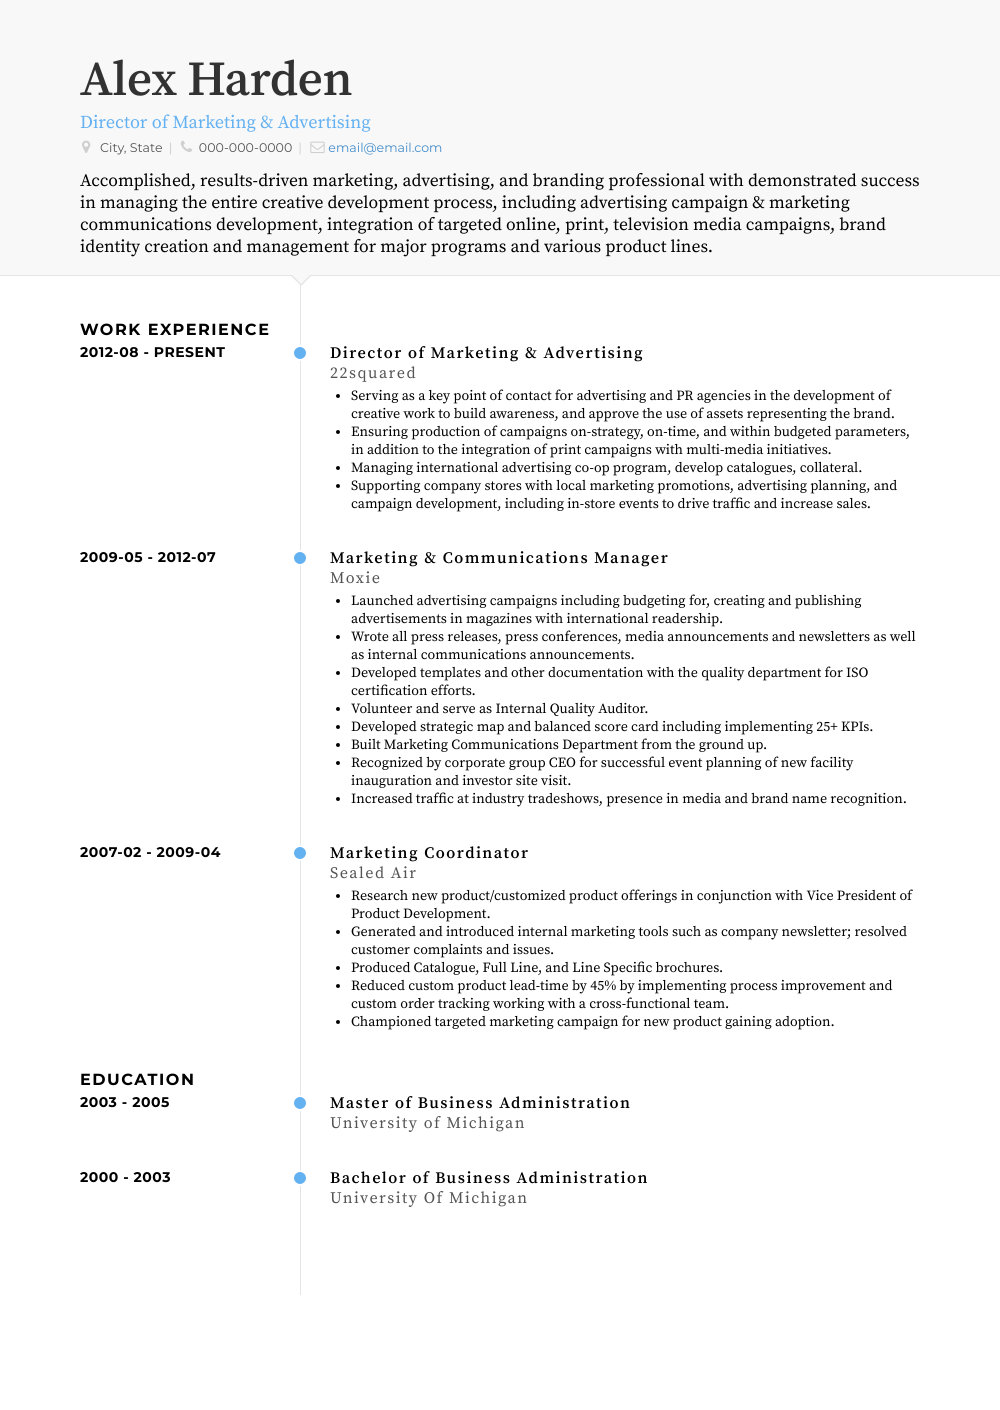 Director Of Marketing & Advertising Resume Sample and Template